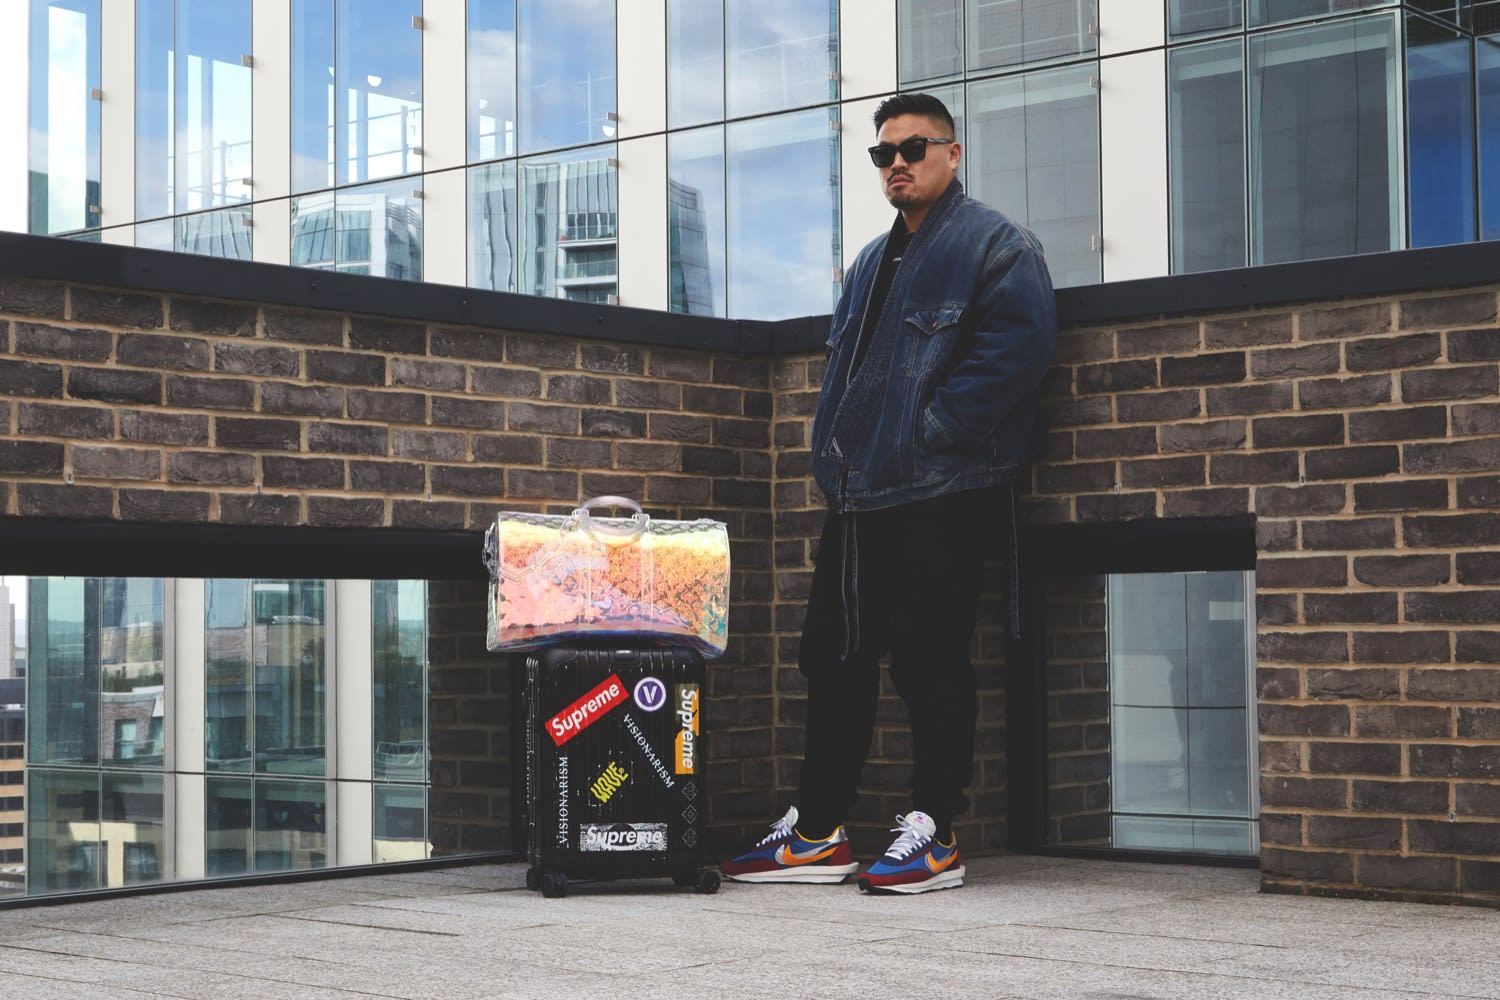 Thierry Tek of Visionarism wearing Sacai x Nike LDWaffle sneakers and Balenciaga jacket with Louis Vuitton holographic hold all and Rimowa flight case for END.